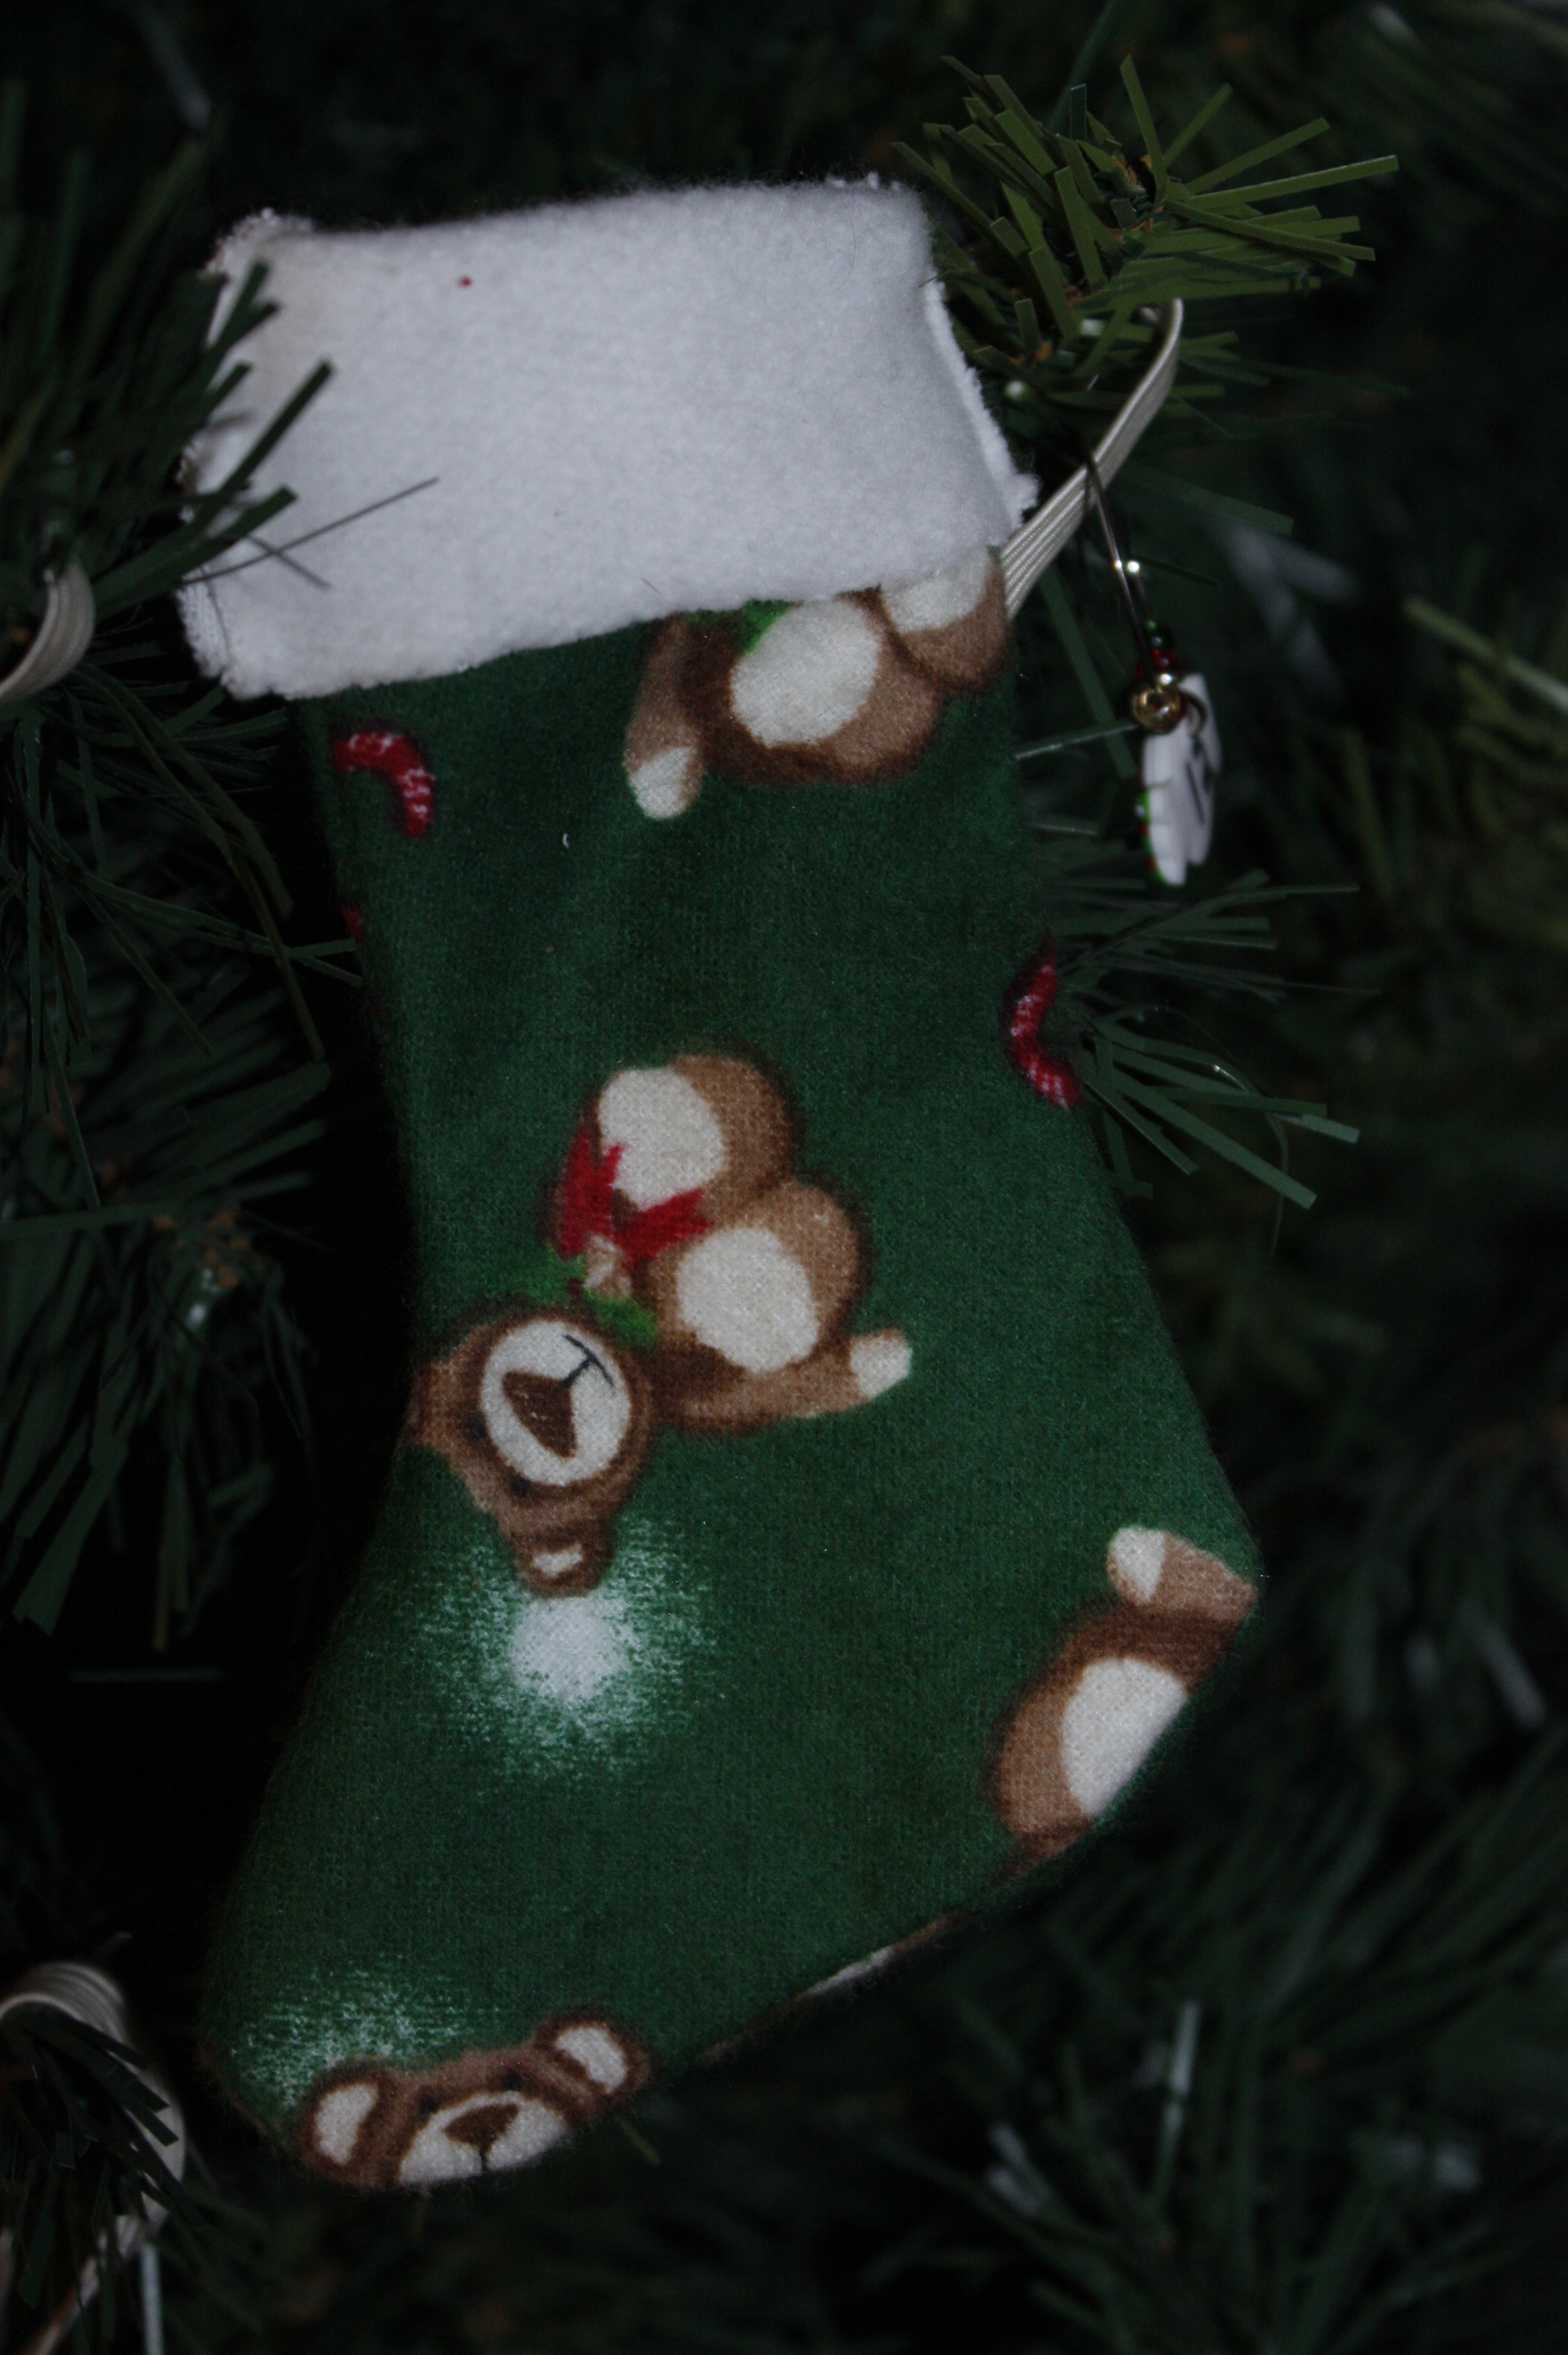 im a beginner with the sewing machine so it took me 3 nights to complete this project i sewed 24 mini stockings for him to hang on his christmas tree see - Christmas Decorations To Make With Sewing Machine